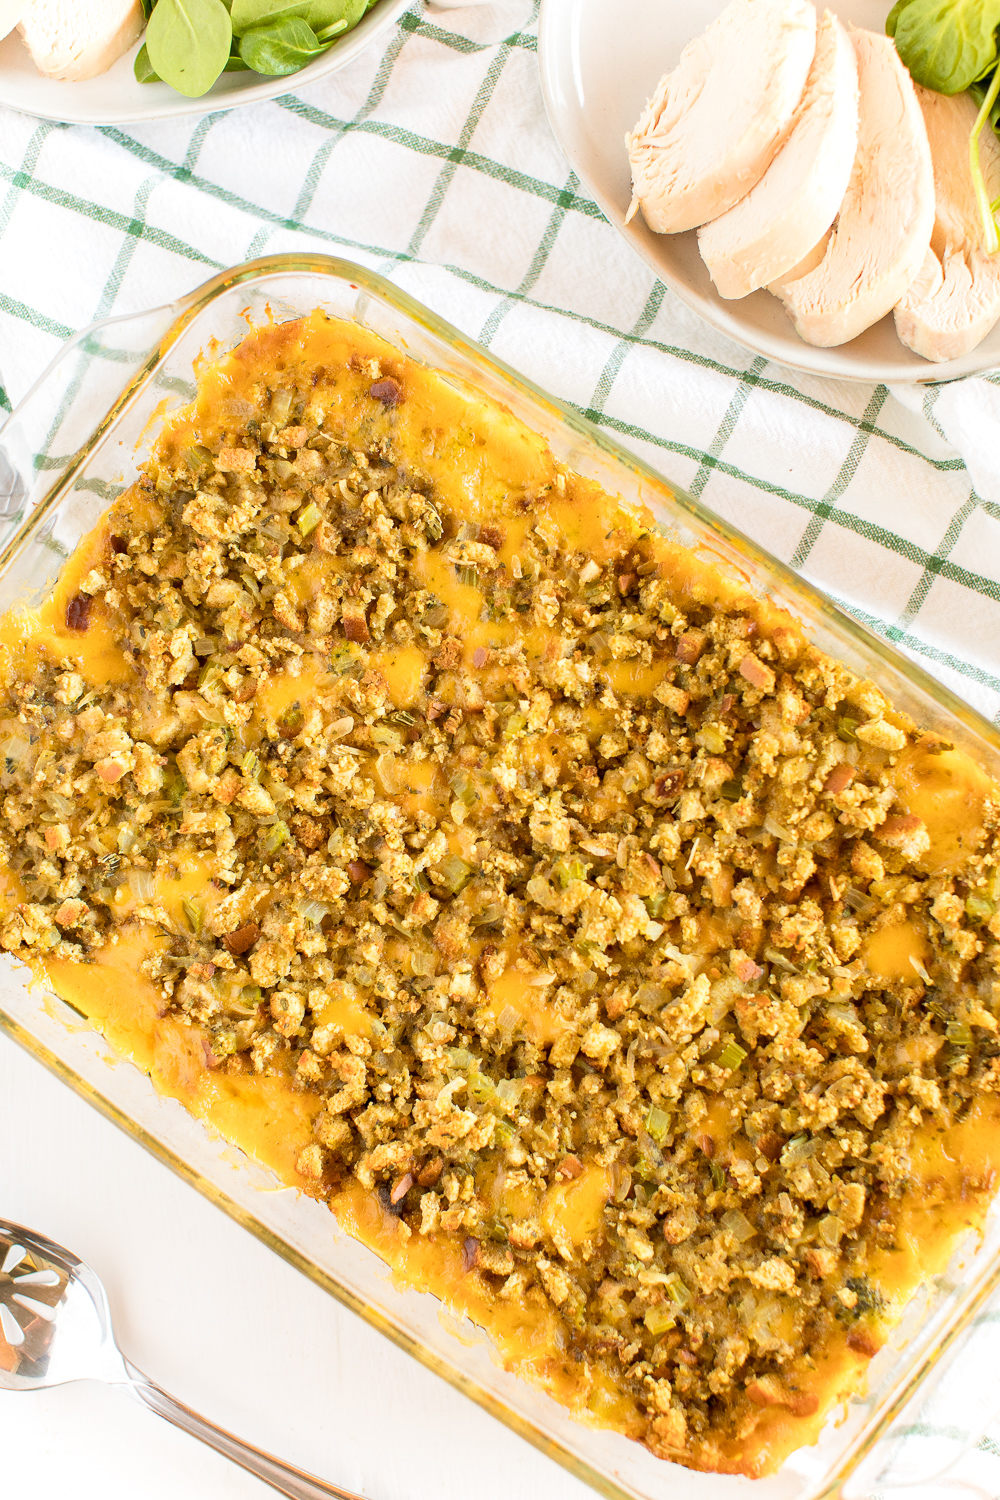 Broccoli Cheese Casserole in 9x13-inch baking dish.